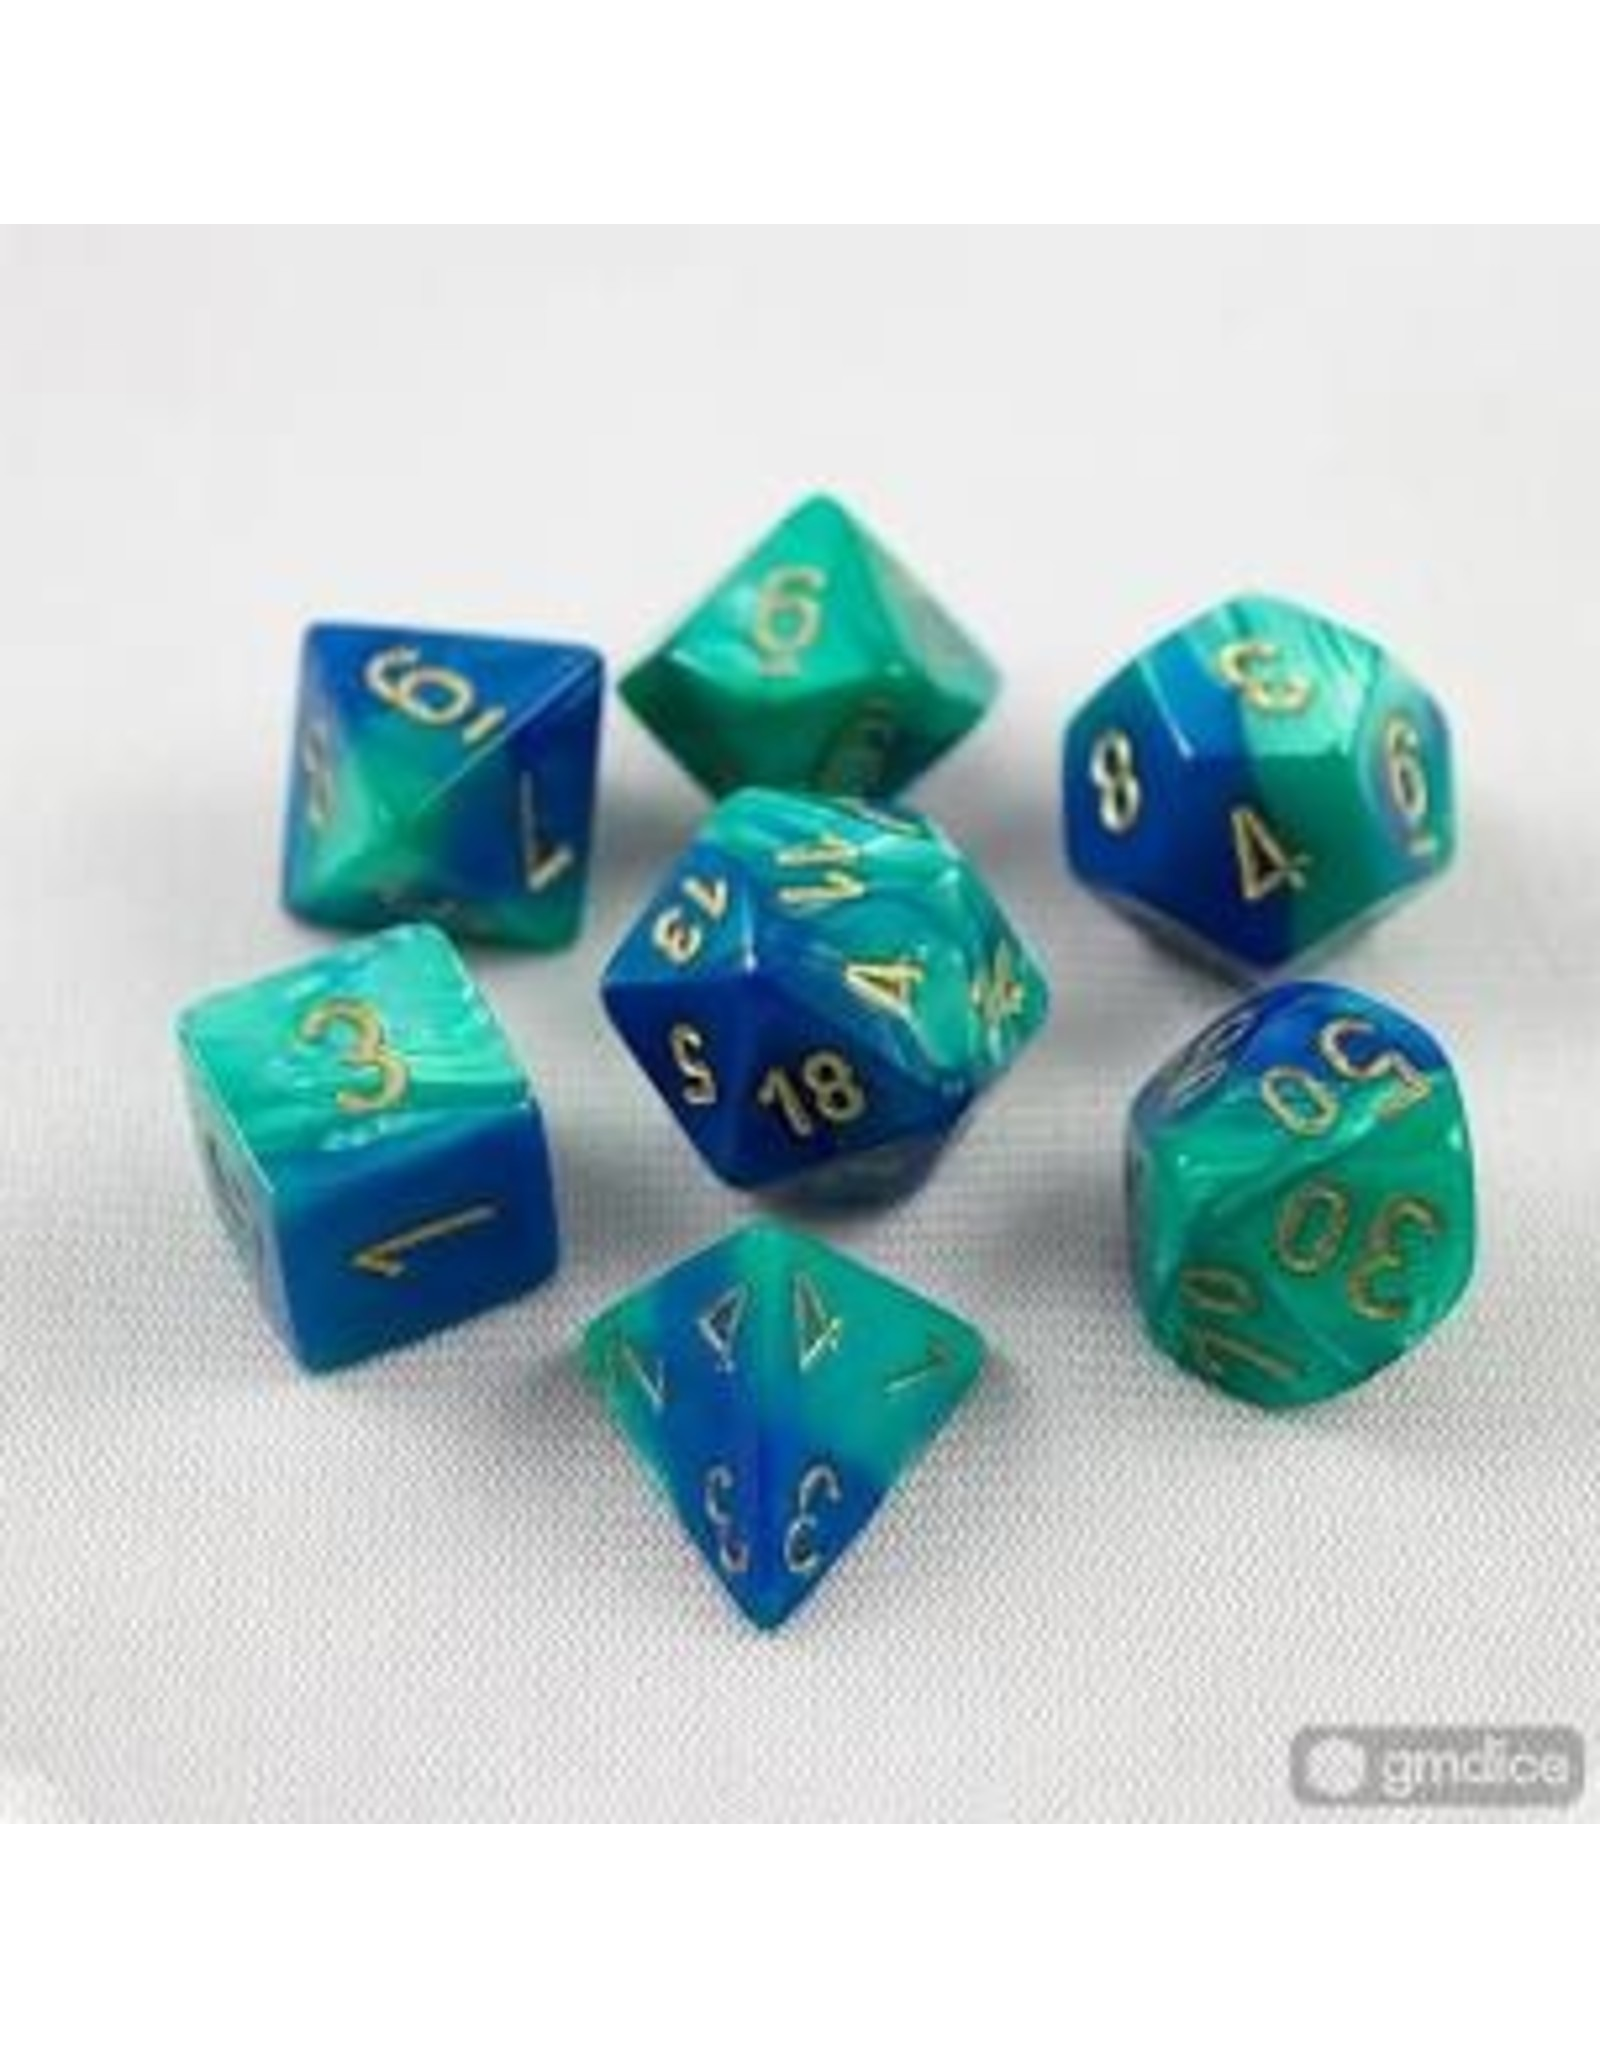 Chessex 7-Set Polyhedral CubeGemini#7 Blue Teal Gold